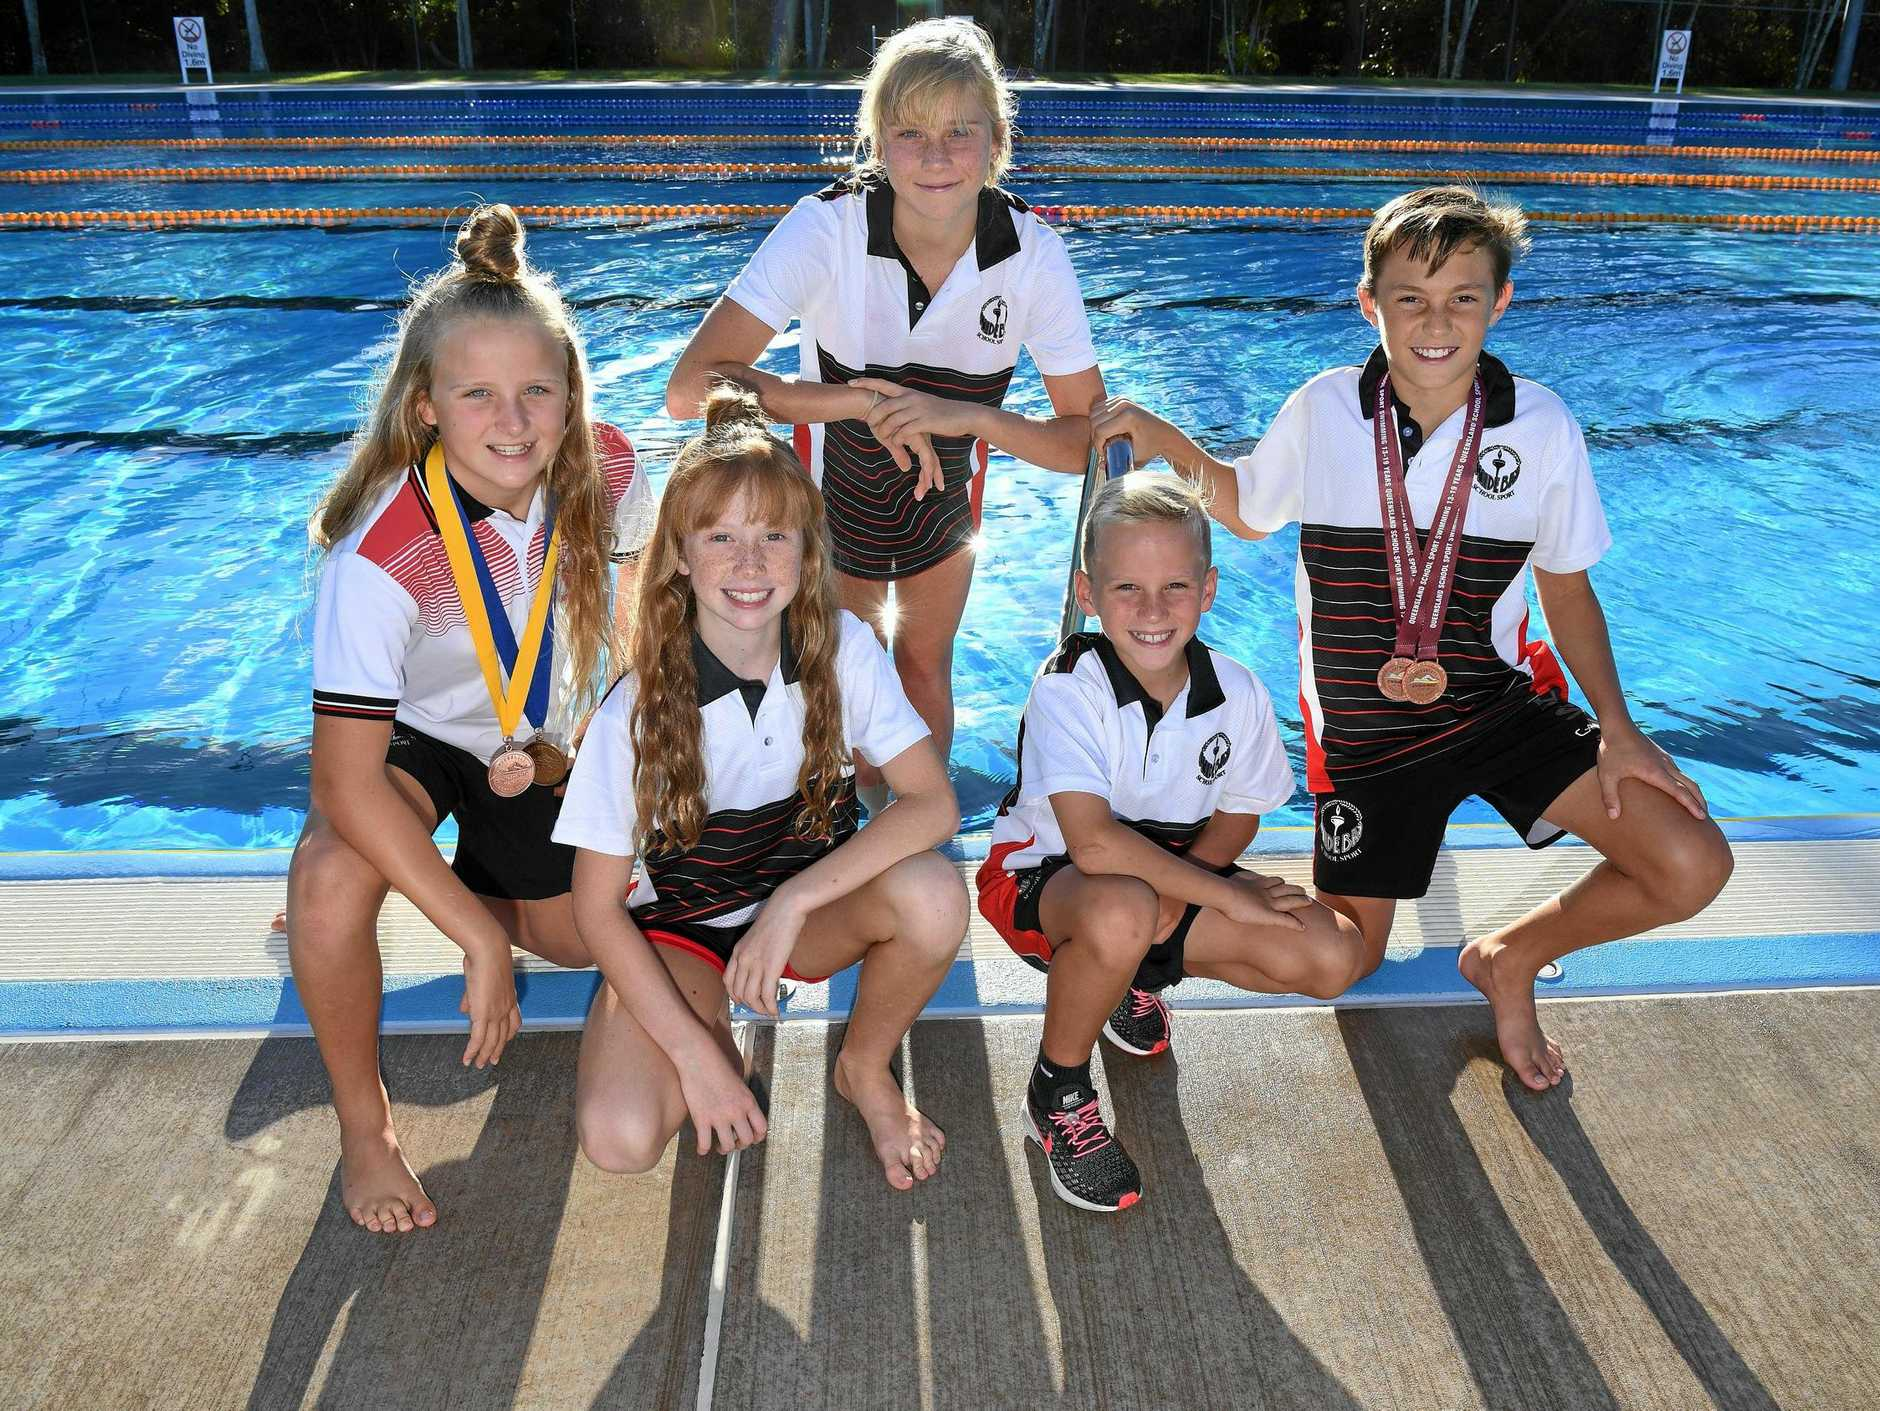 GOING SWIMMINGLY: Kasey Krueger, Indi Bland, Taylar Krueger, Aarj Day and Dehan Pretorius performed strongly at the Queensland State School Swimming Titles in Brisbane.